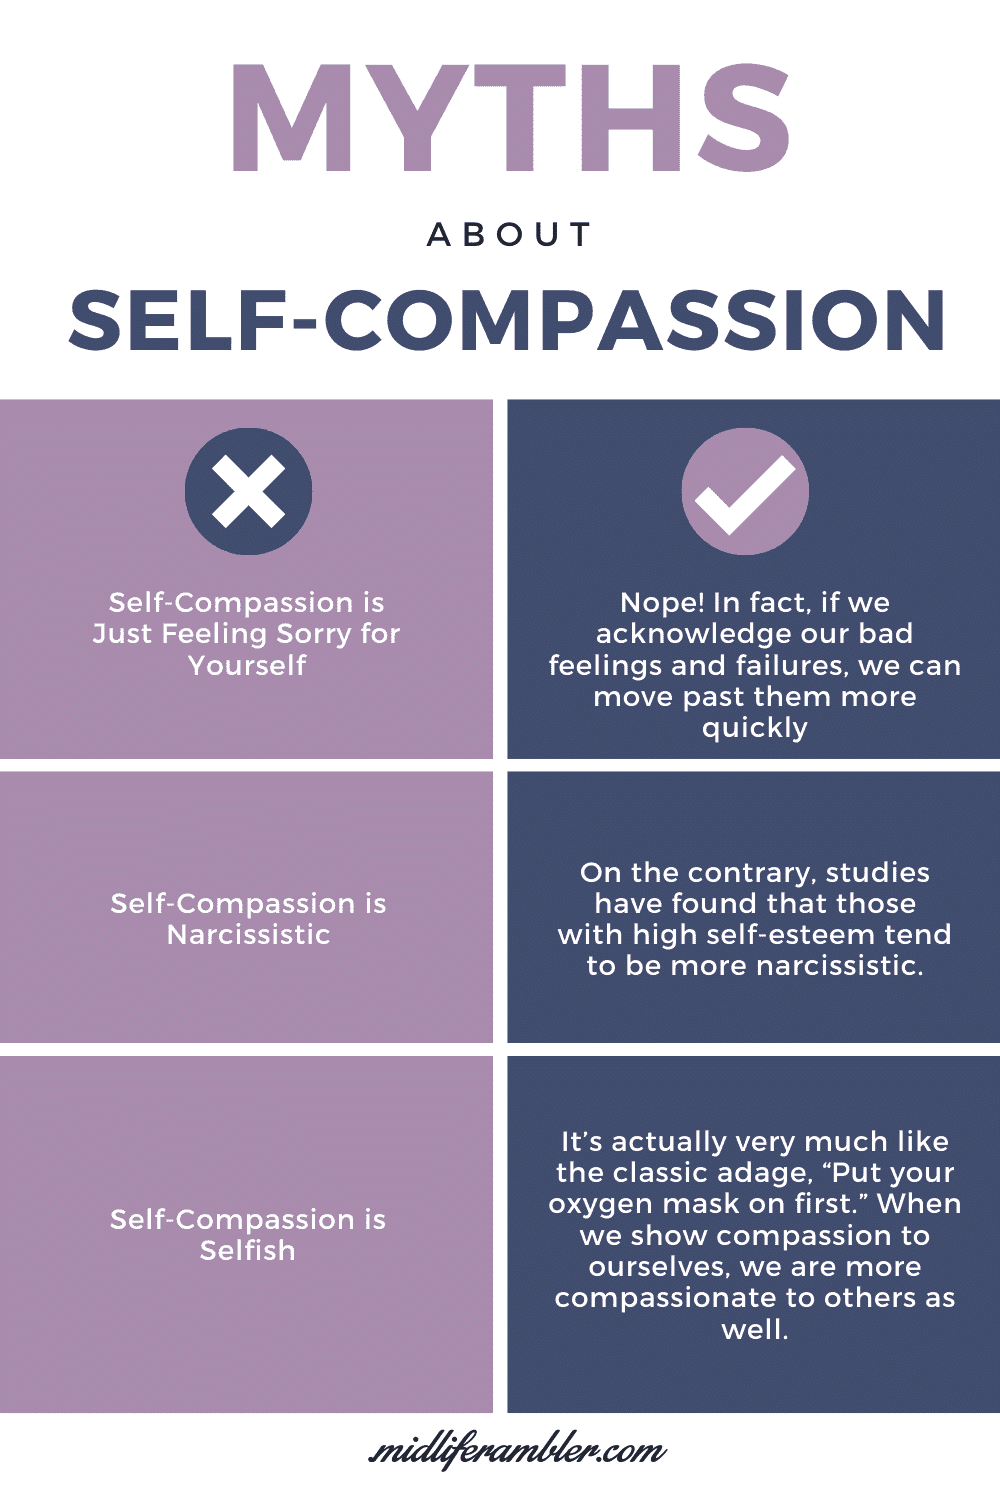 Myths about self-compassion